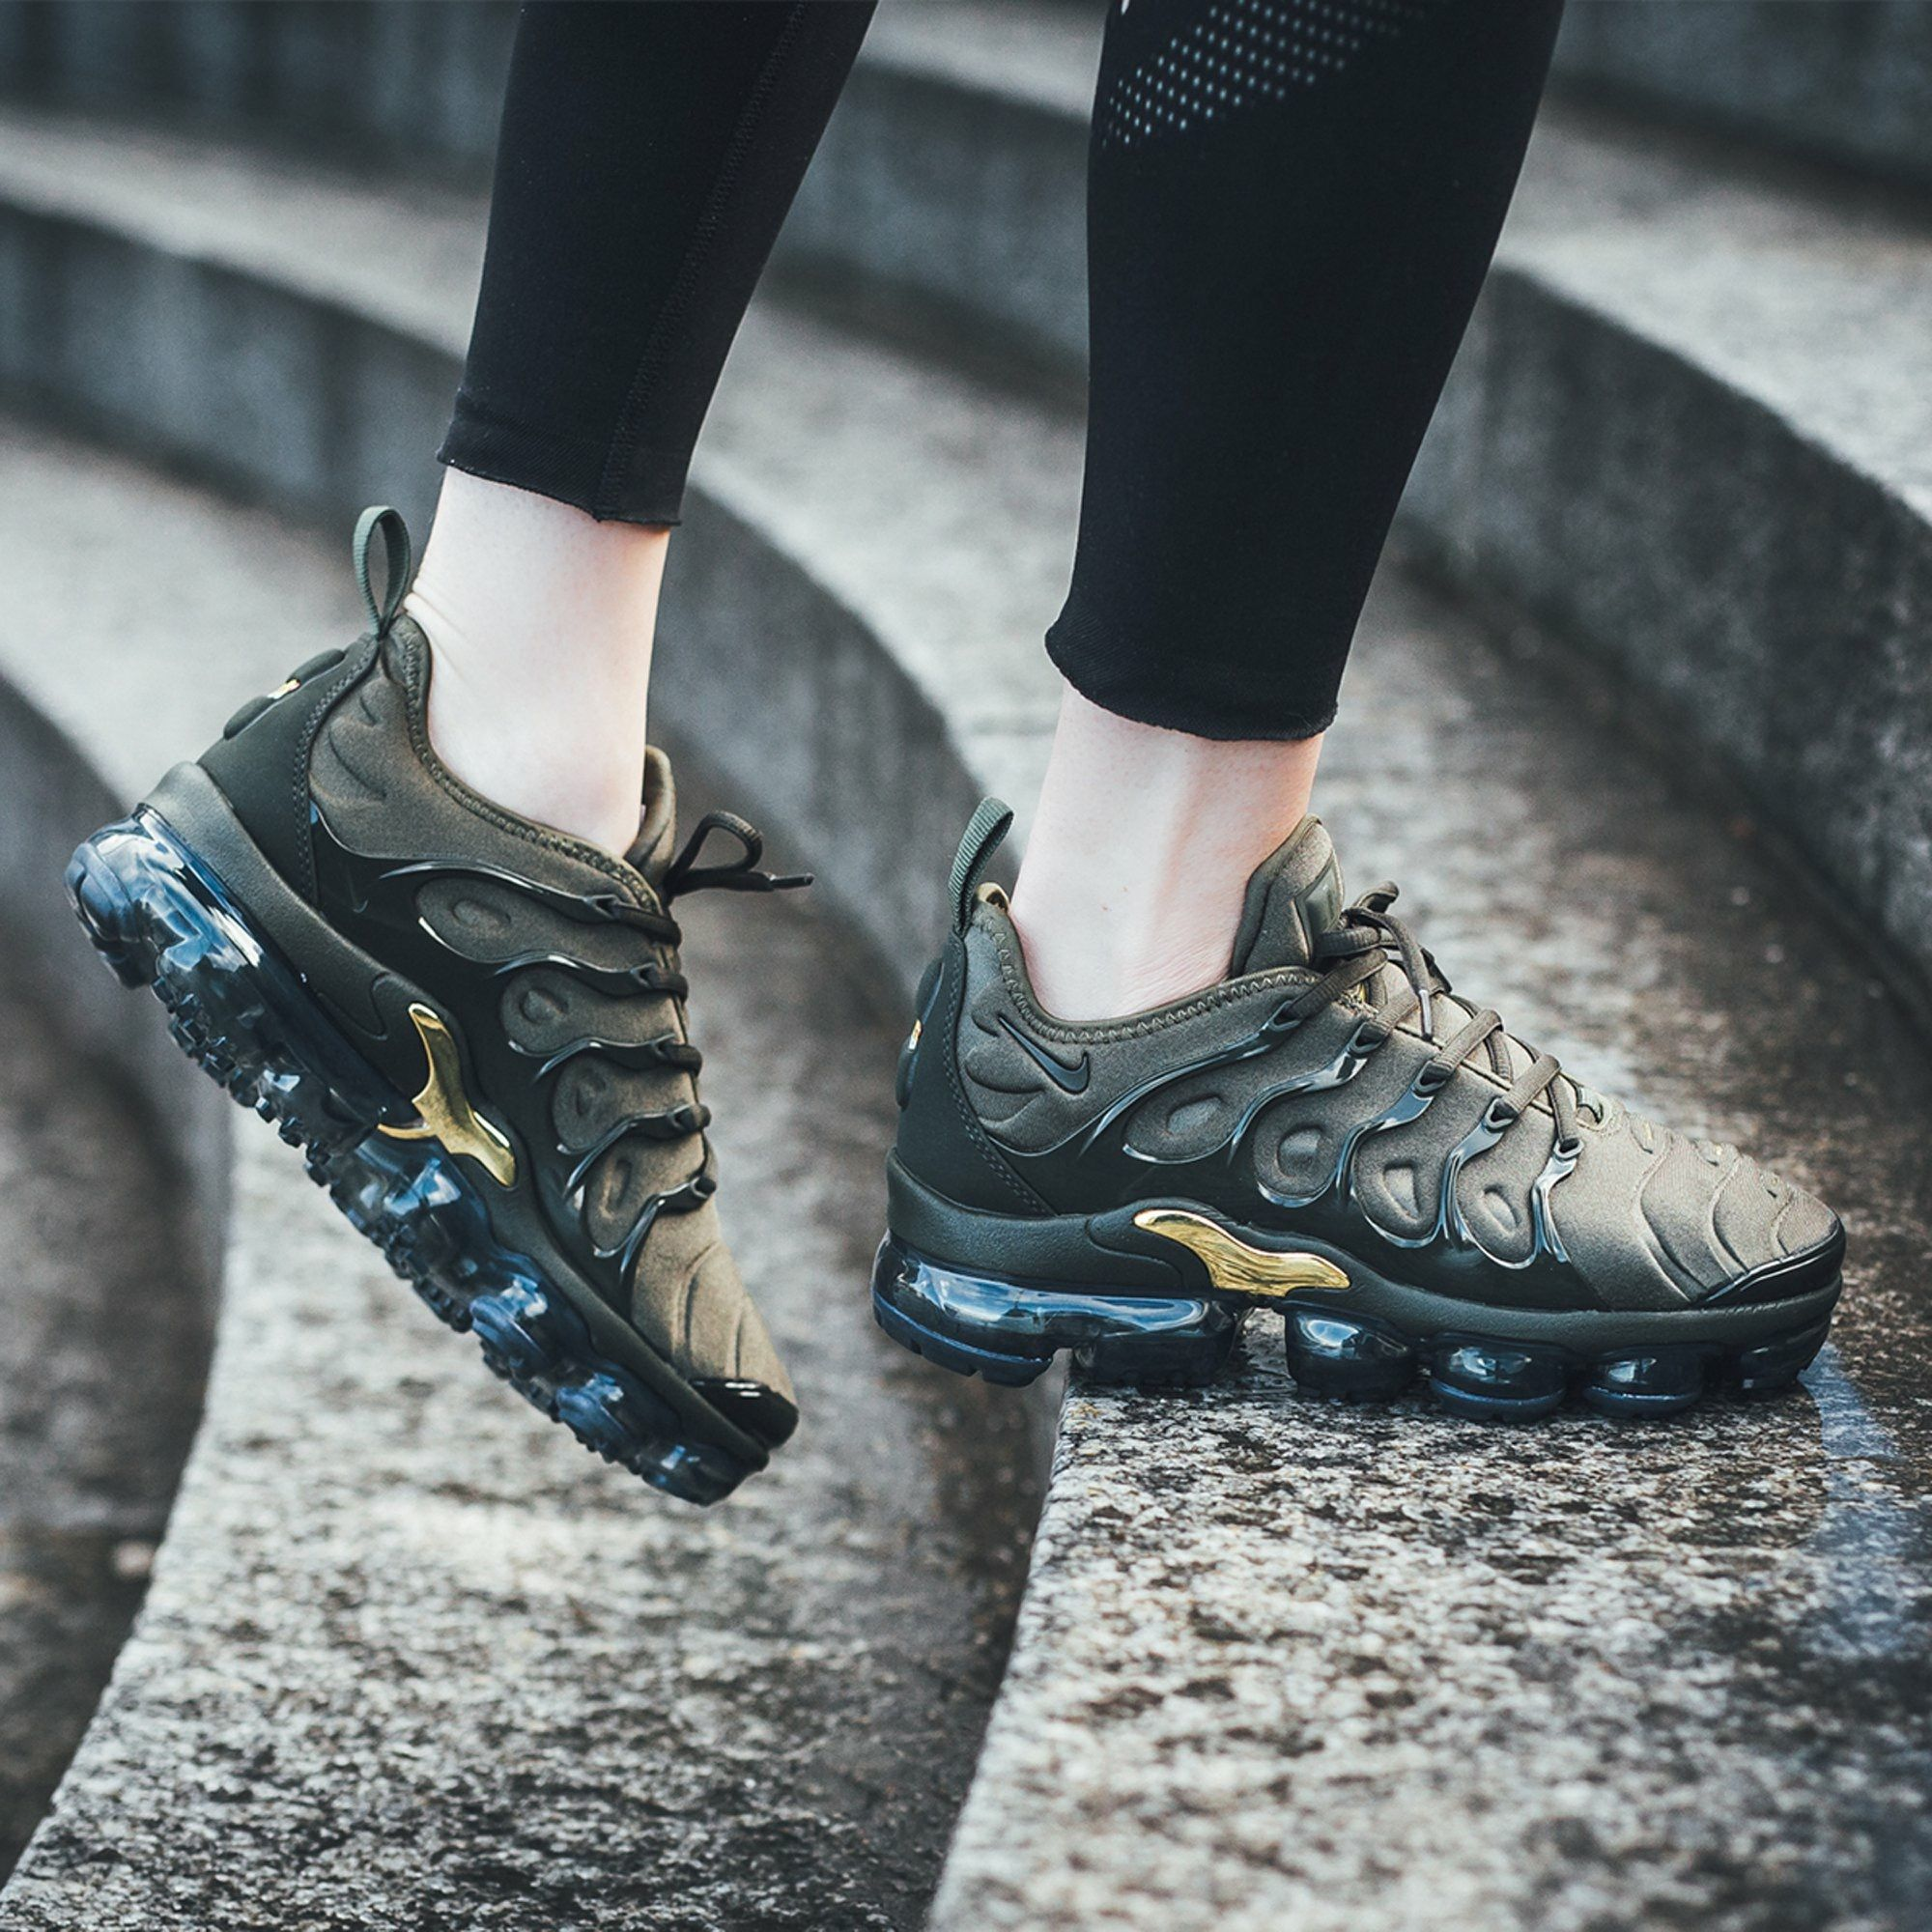 Nike Air Vapormax Plus | Sneakers fashion, Kicks shoes, Nike ...